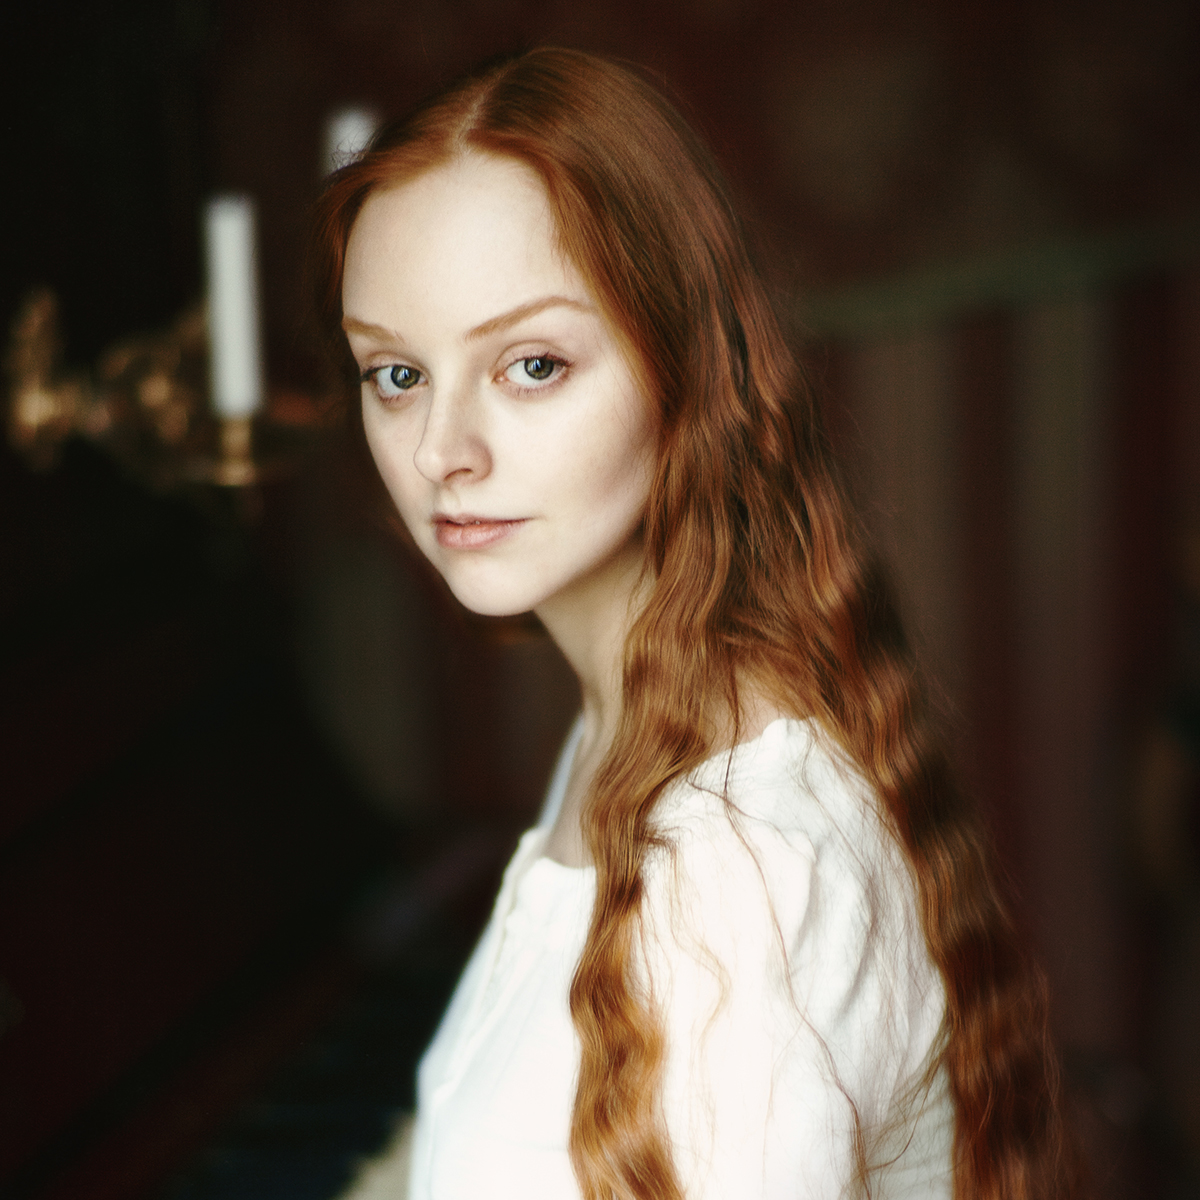 Intriguing Beauty of Redheads